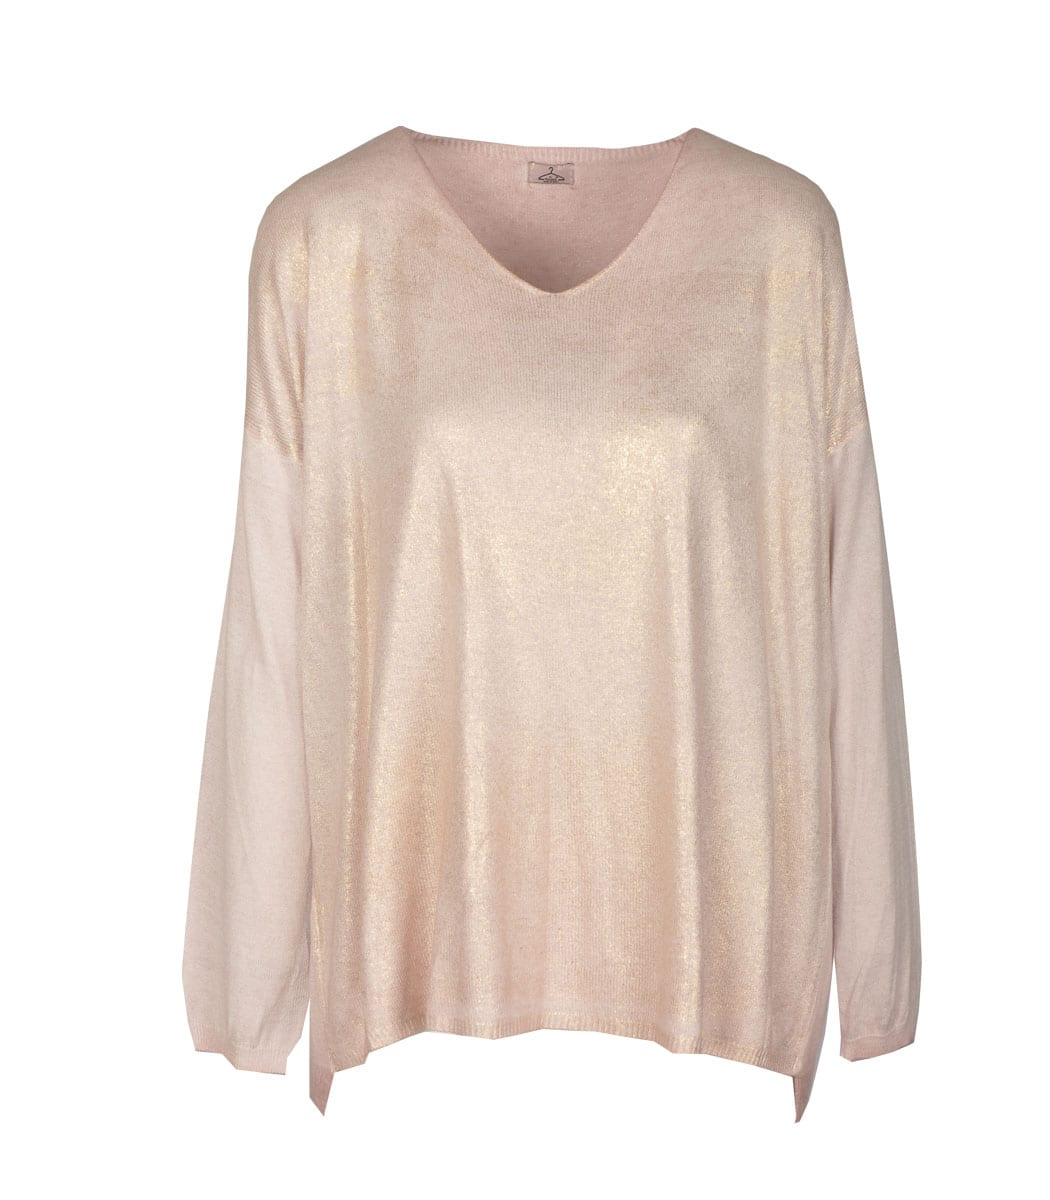 Gold lurex coated top